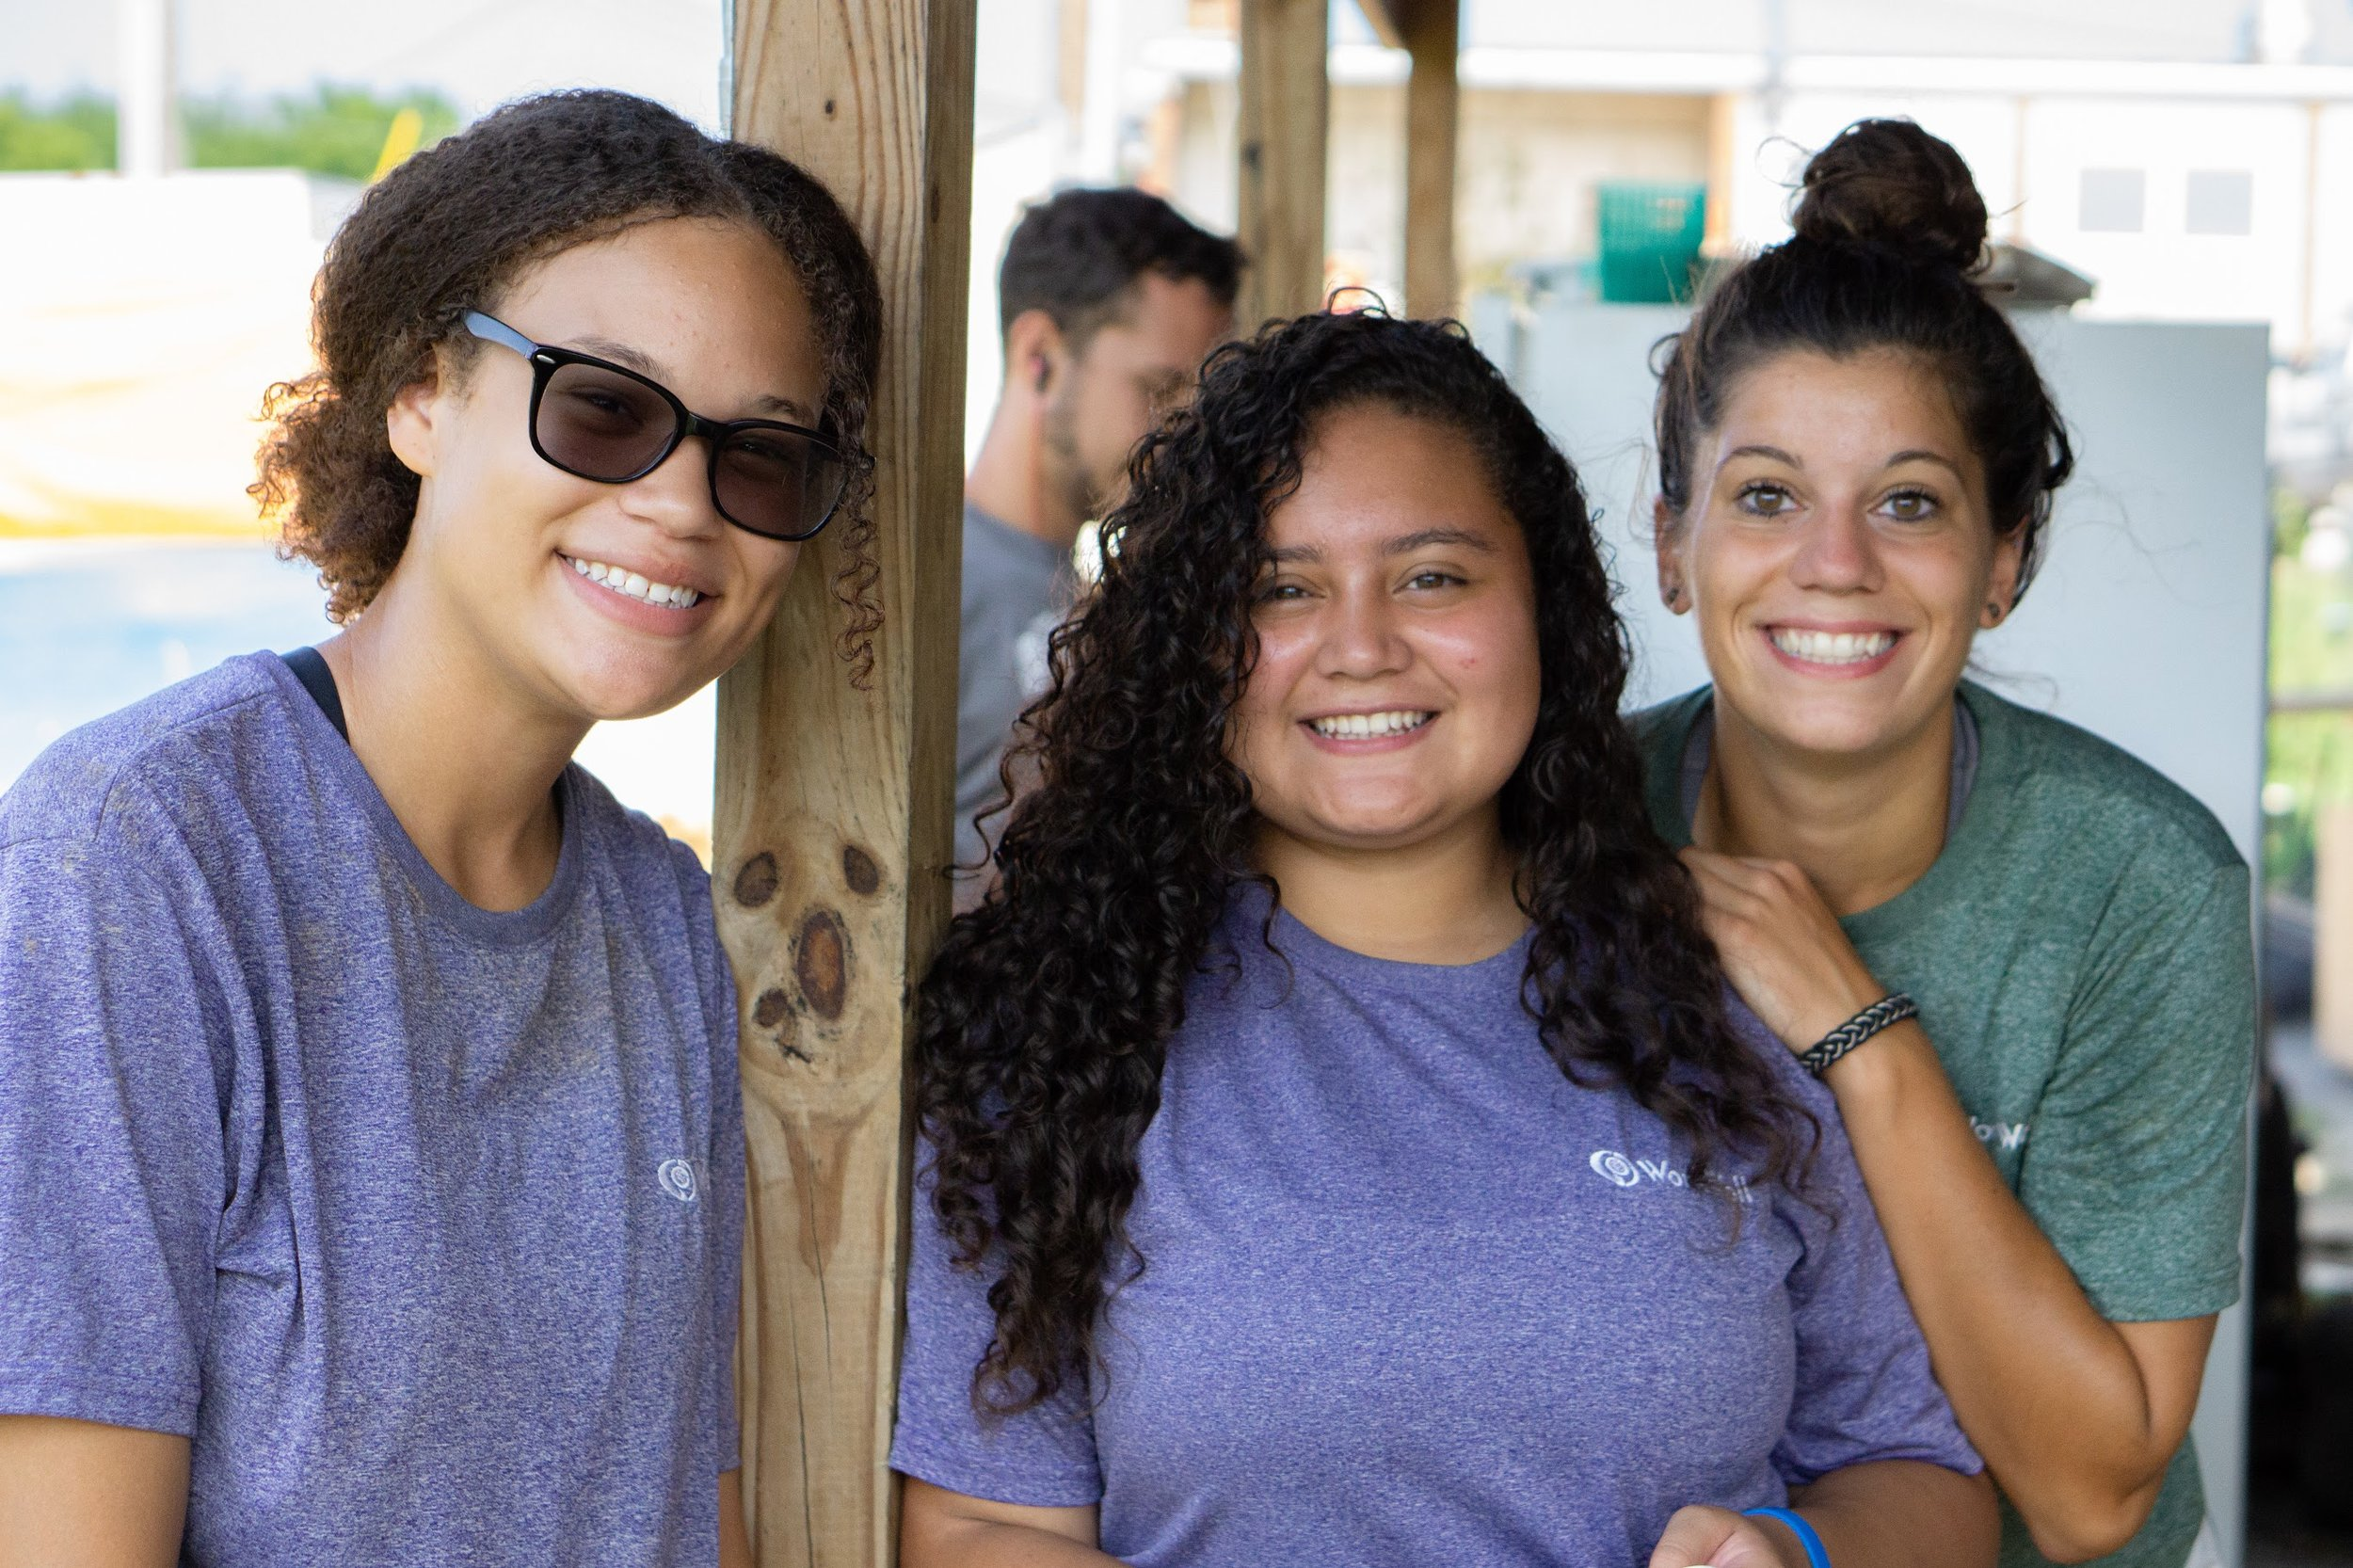 Peer Leaders are mentors for the summer. Along with workplace skills, they also take time to listen and speak holistically into the youth's moment.